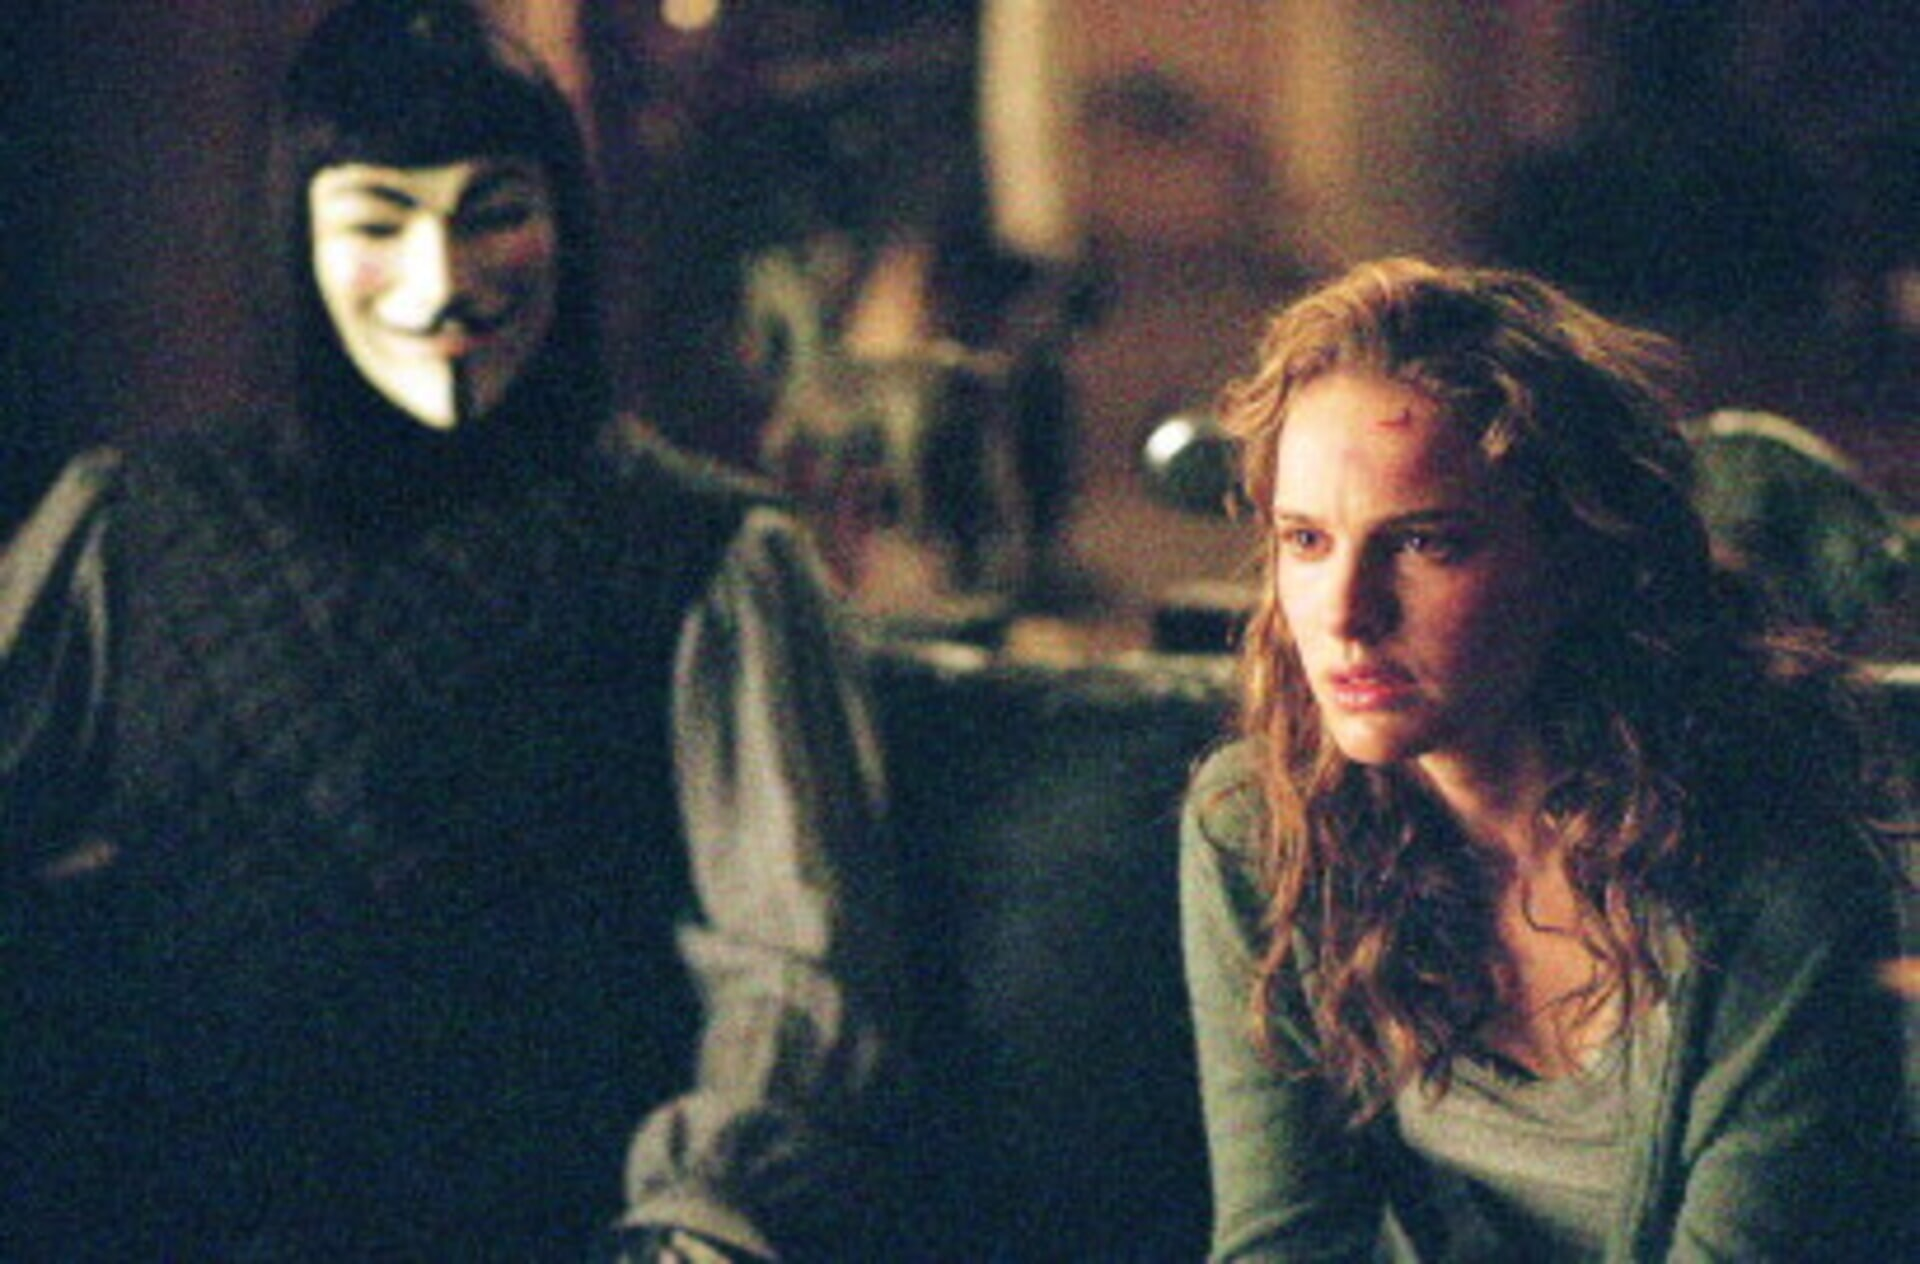 V for Vendetta - Image 34